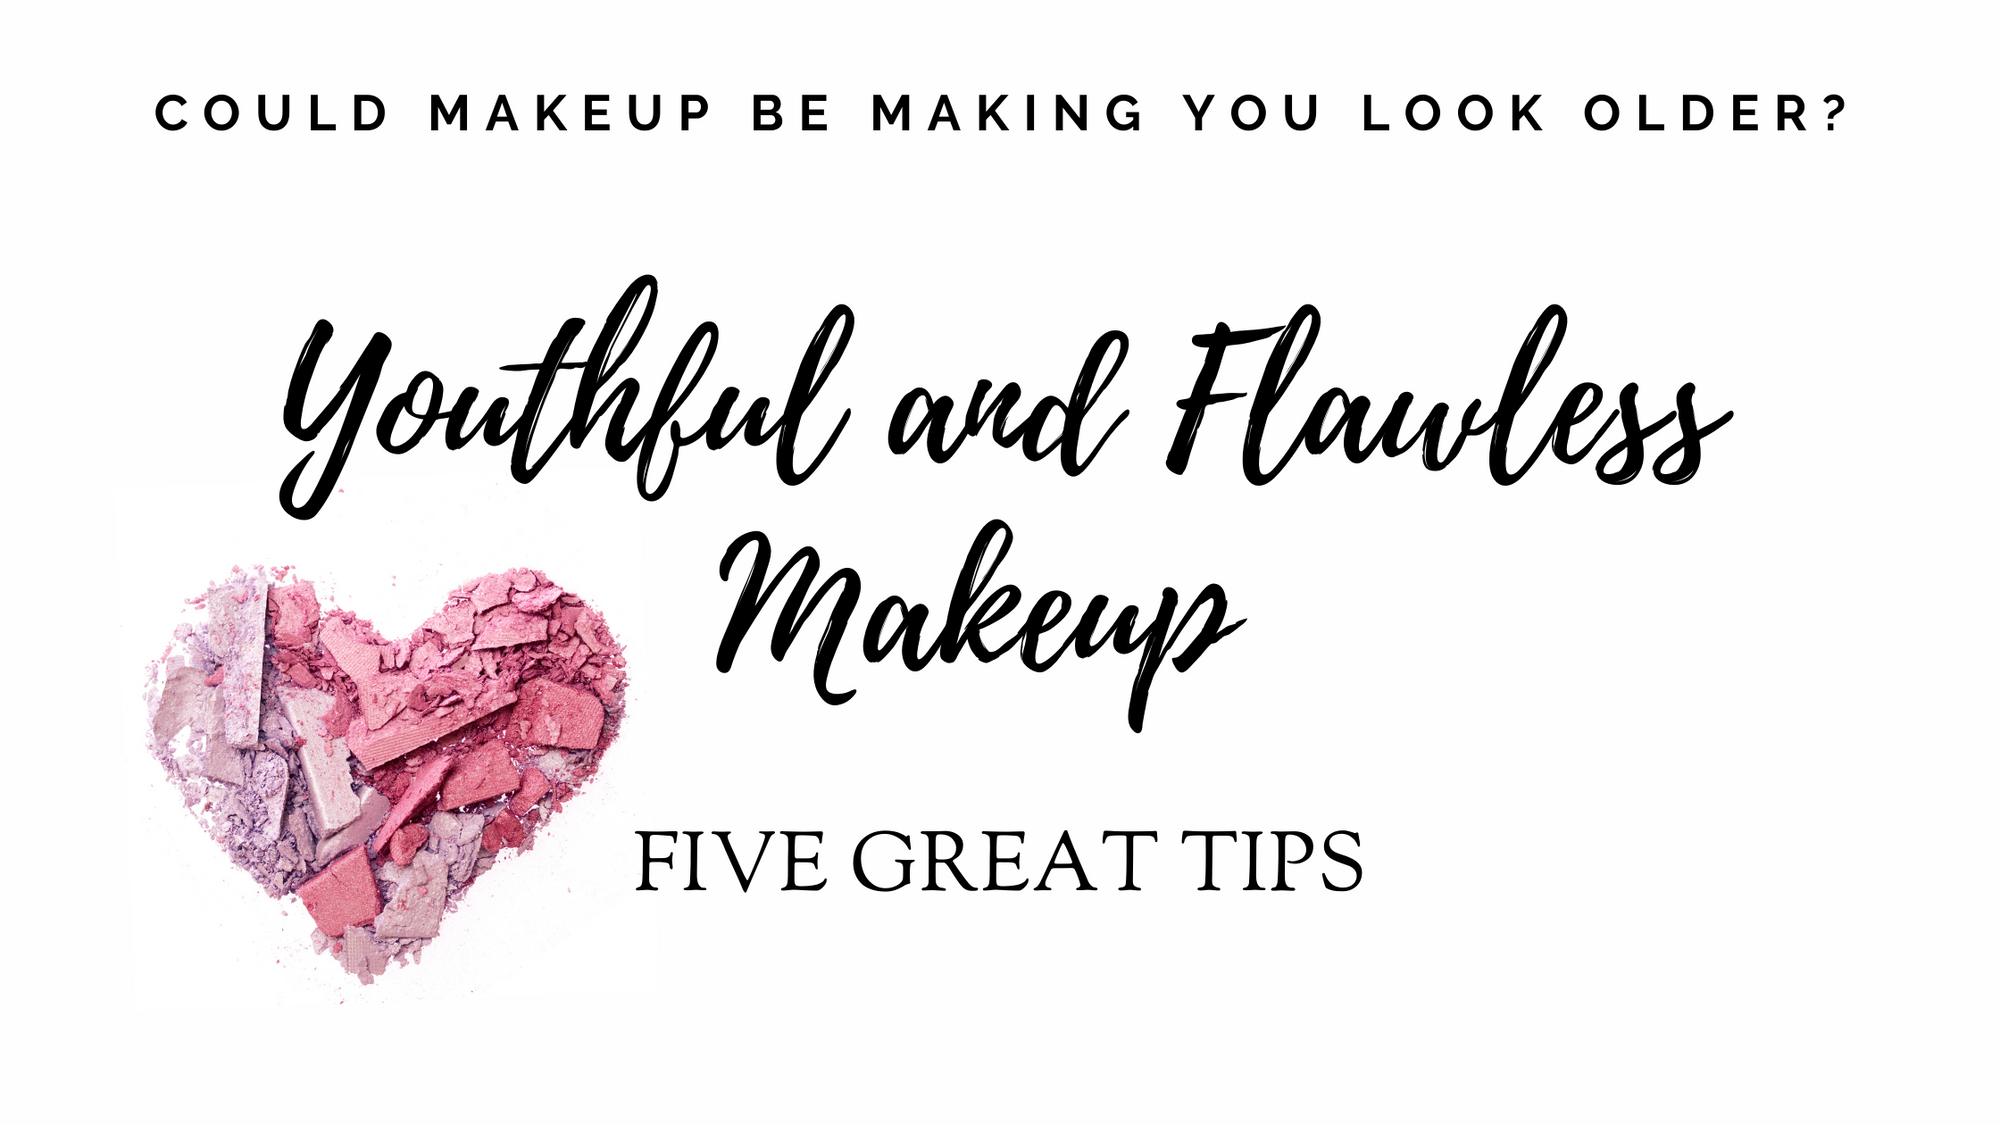 Youthful looking makeup!  5 great tips!